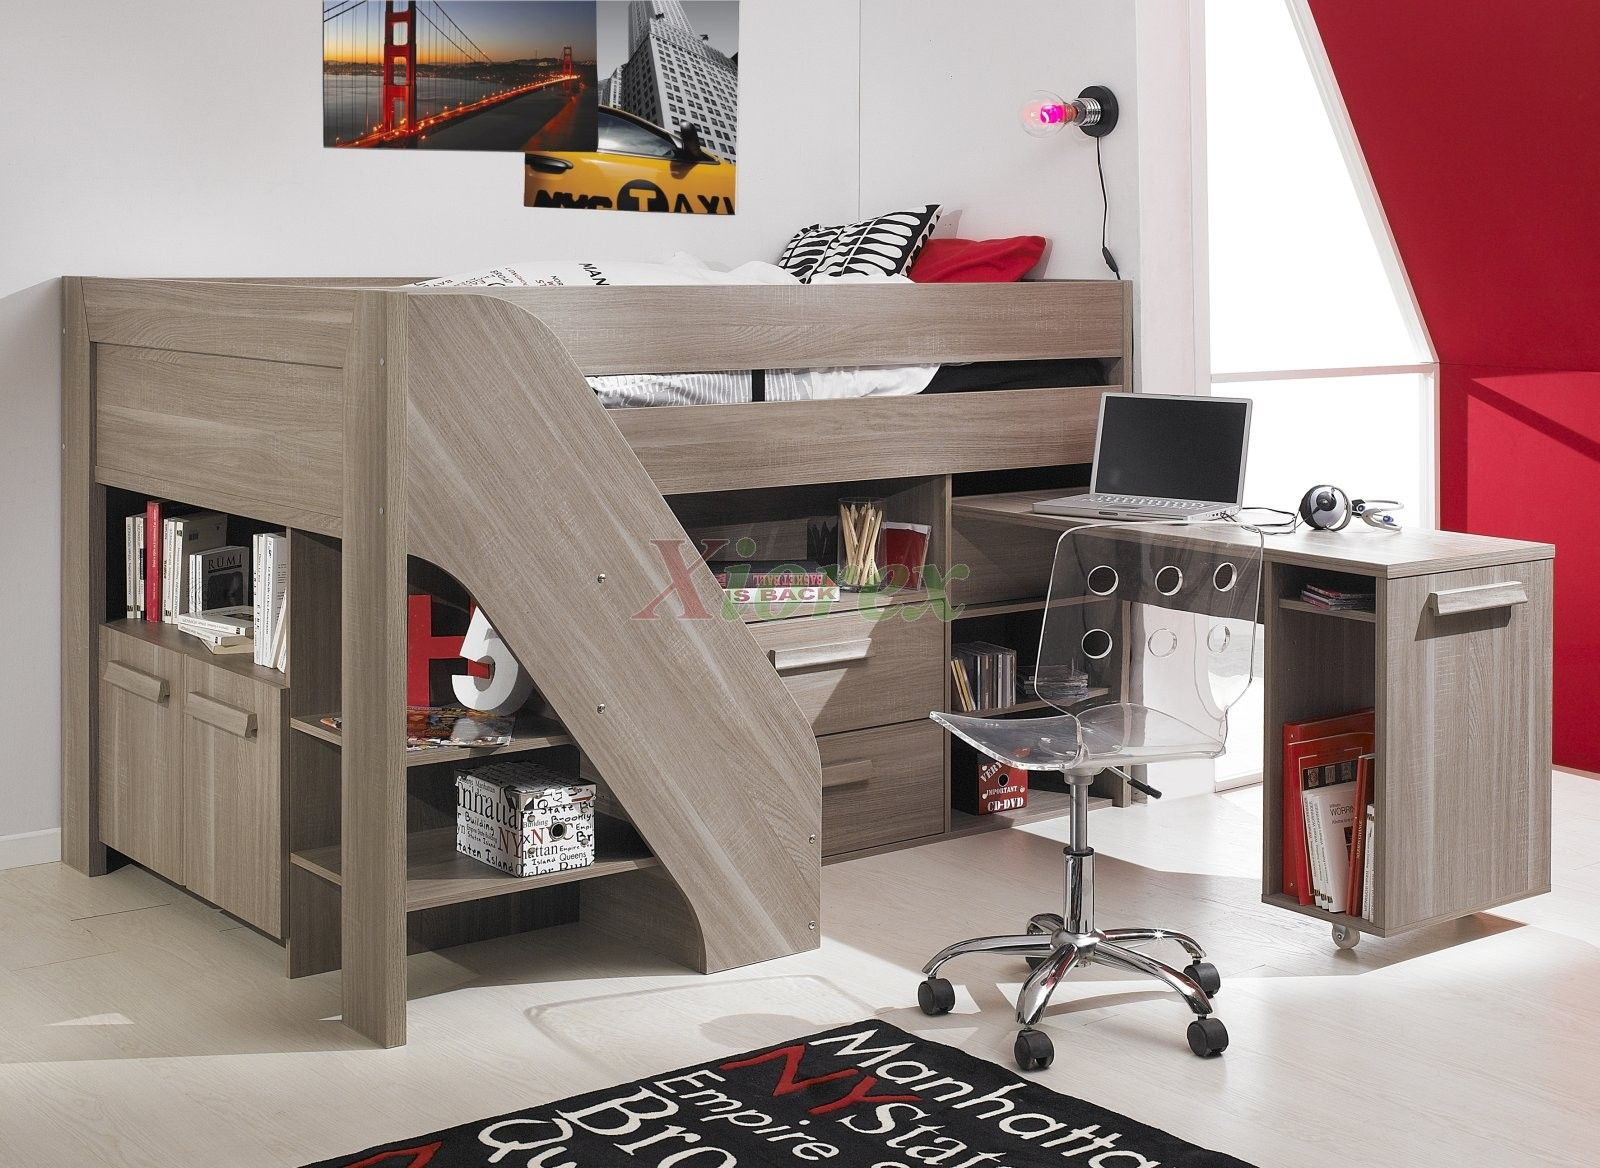 Boys Loft Bed With Desk Gami Hangun Youth Cabin Loft Beds With Stairs Desk For Boys Girls Bunk Bed With Desk Modern Bunk Beds Bunk Beds With Stairs